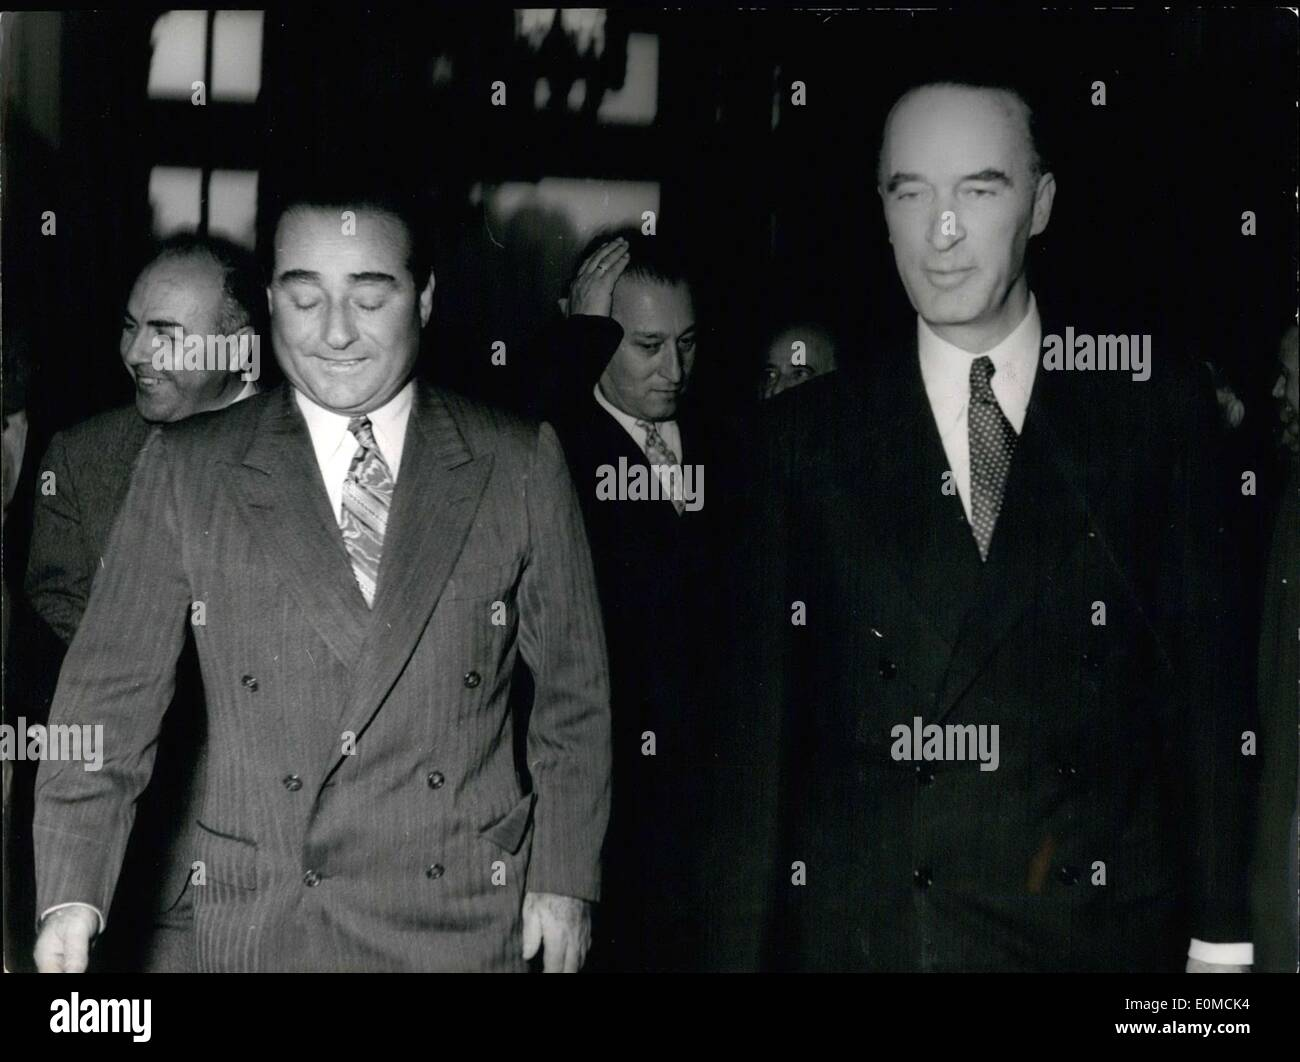 Oct. 05, 1954 - Turkish Prime Minister Adnan Krupp, who is currently on a trip through Germany, visited the Ruhr region this afternoon. He visited the German industrialist Alfried Krupp von Bohlen und Halbach at Villa H?gel in Essen. - Stock Image